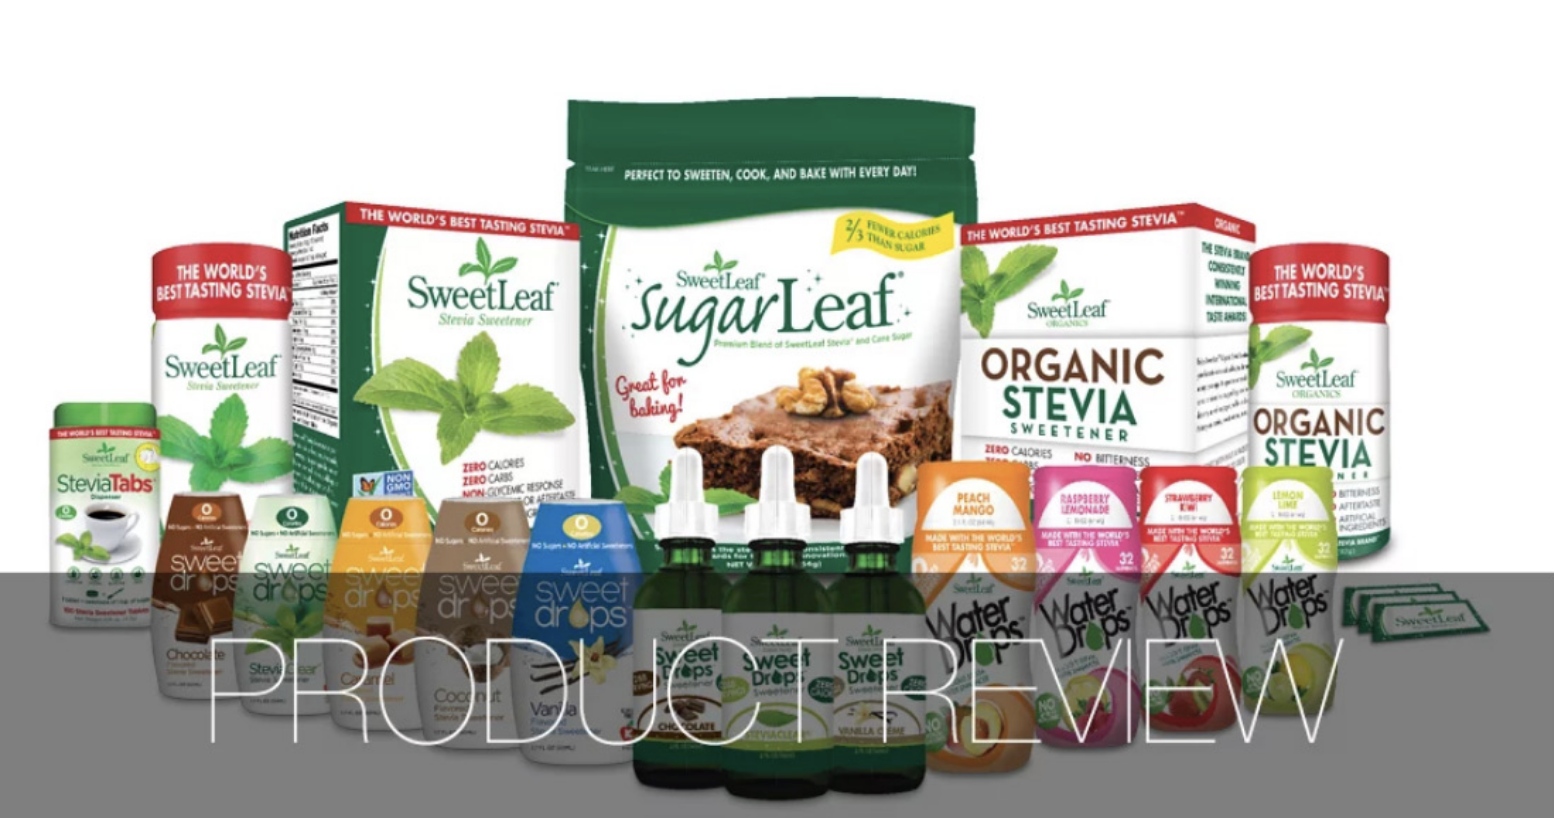 ARTIFICIAL SWEETENER? HECK NO! THE POWER OF STEVIA POWDER IS A GREAT SUBSTITUTE TO SUGAR!